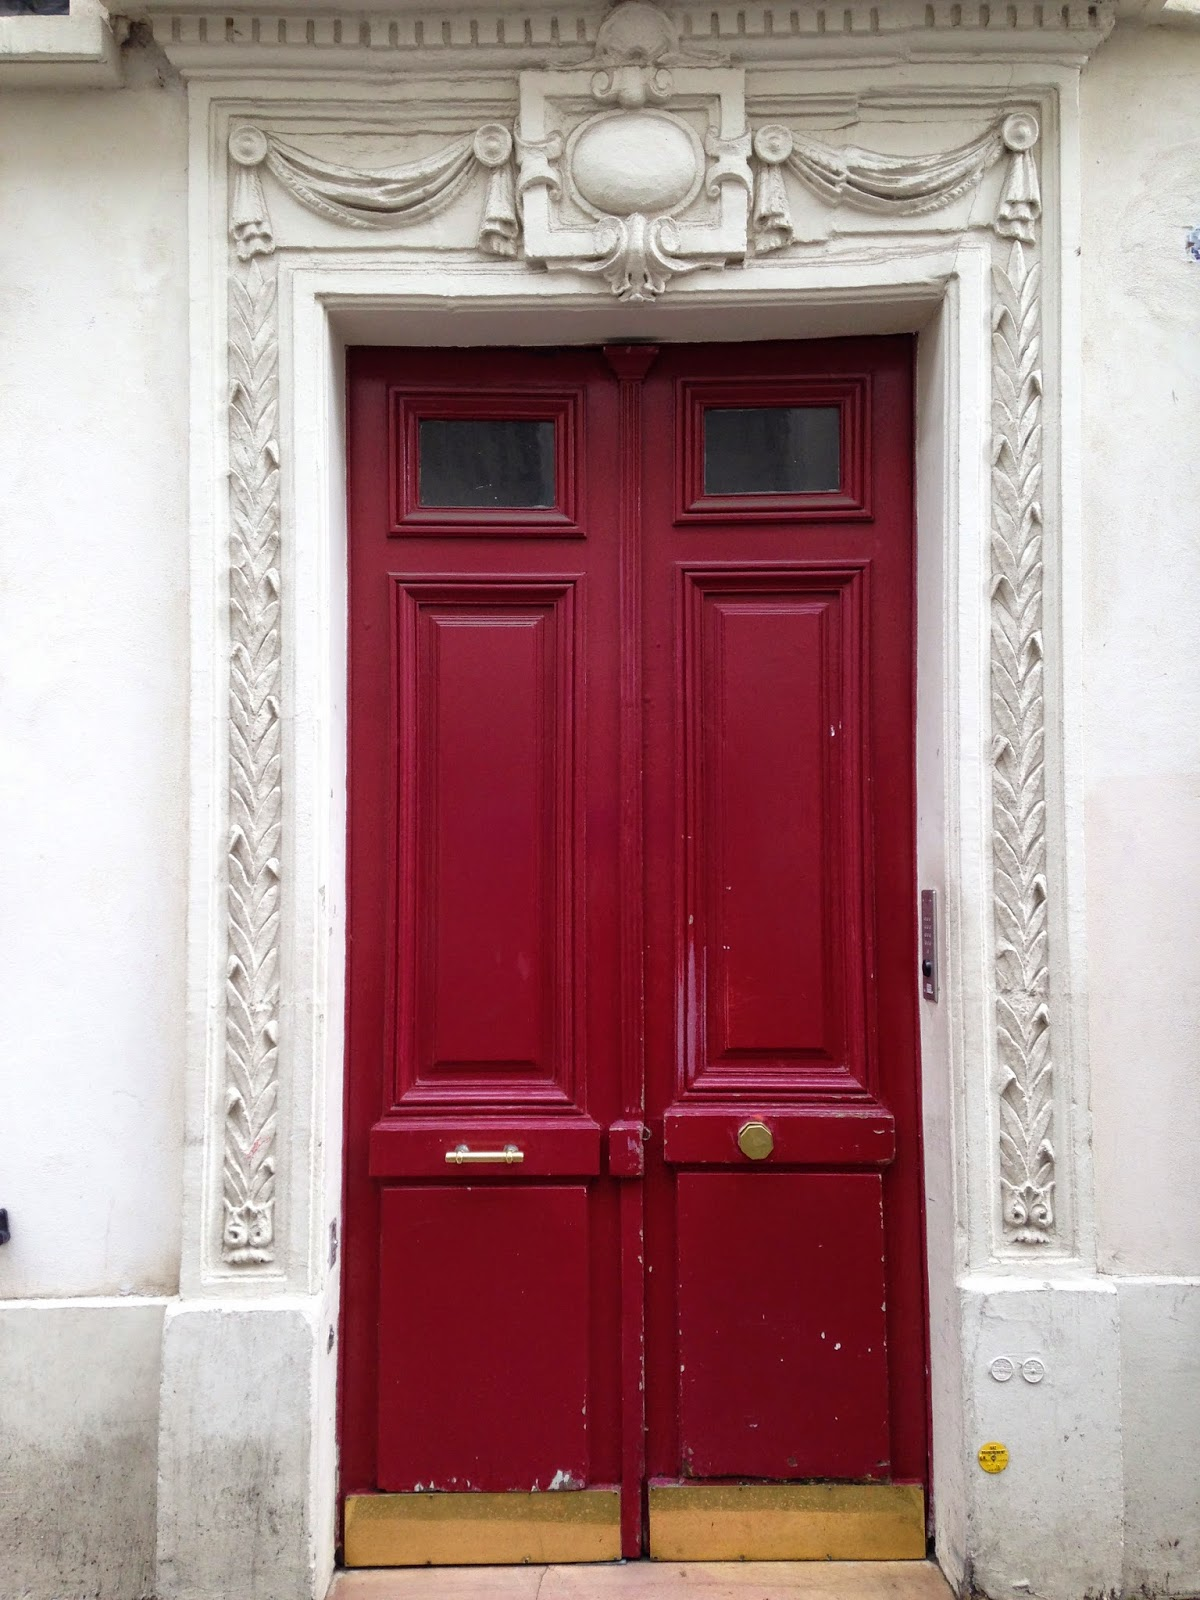 1600 #731323 Typical Parisian (or W. European) Front Door. Doorknobs Are In The  wallpaper European Front Doors 46251200